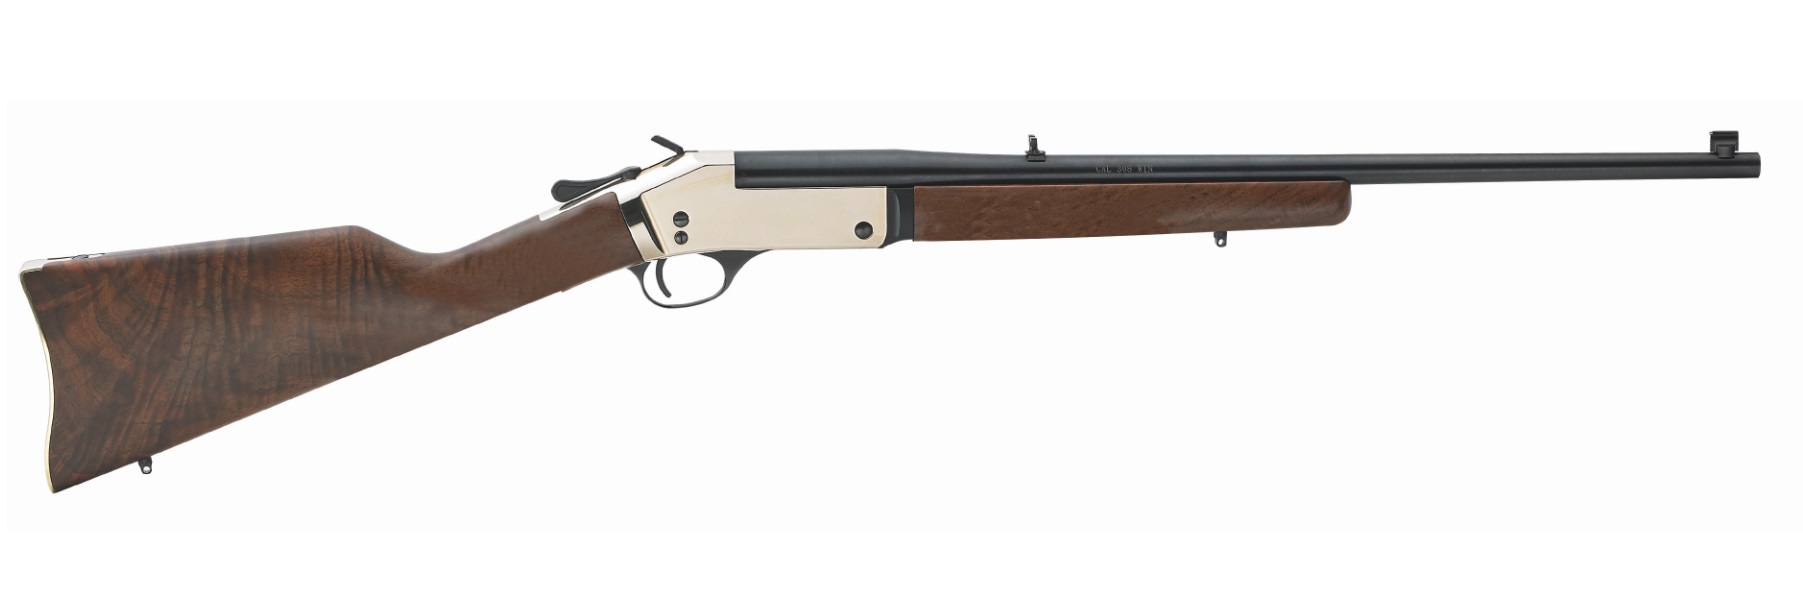 Henry Repeating Arms HENRY SINGLESHOT BRASS RIFLE 357 MAGNUM | 38 SPECIAL